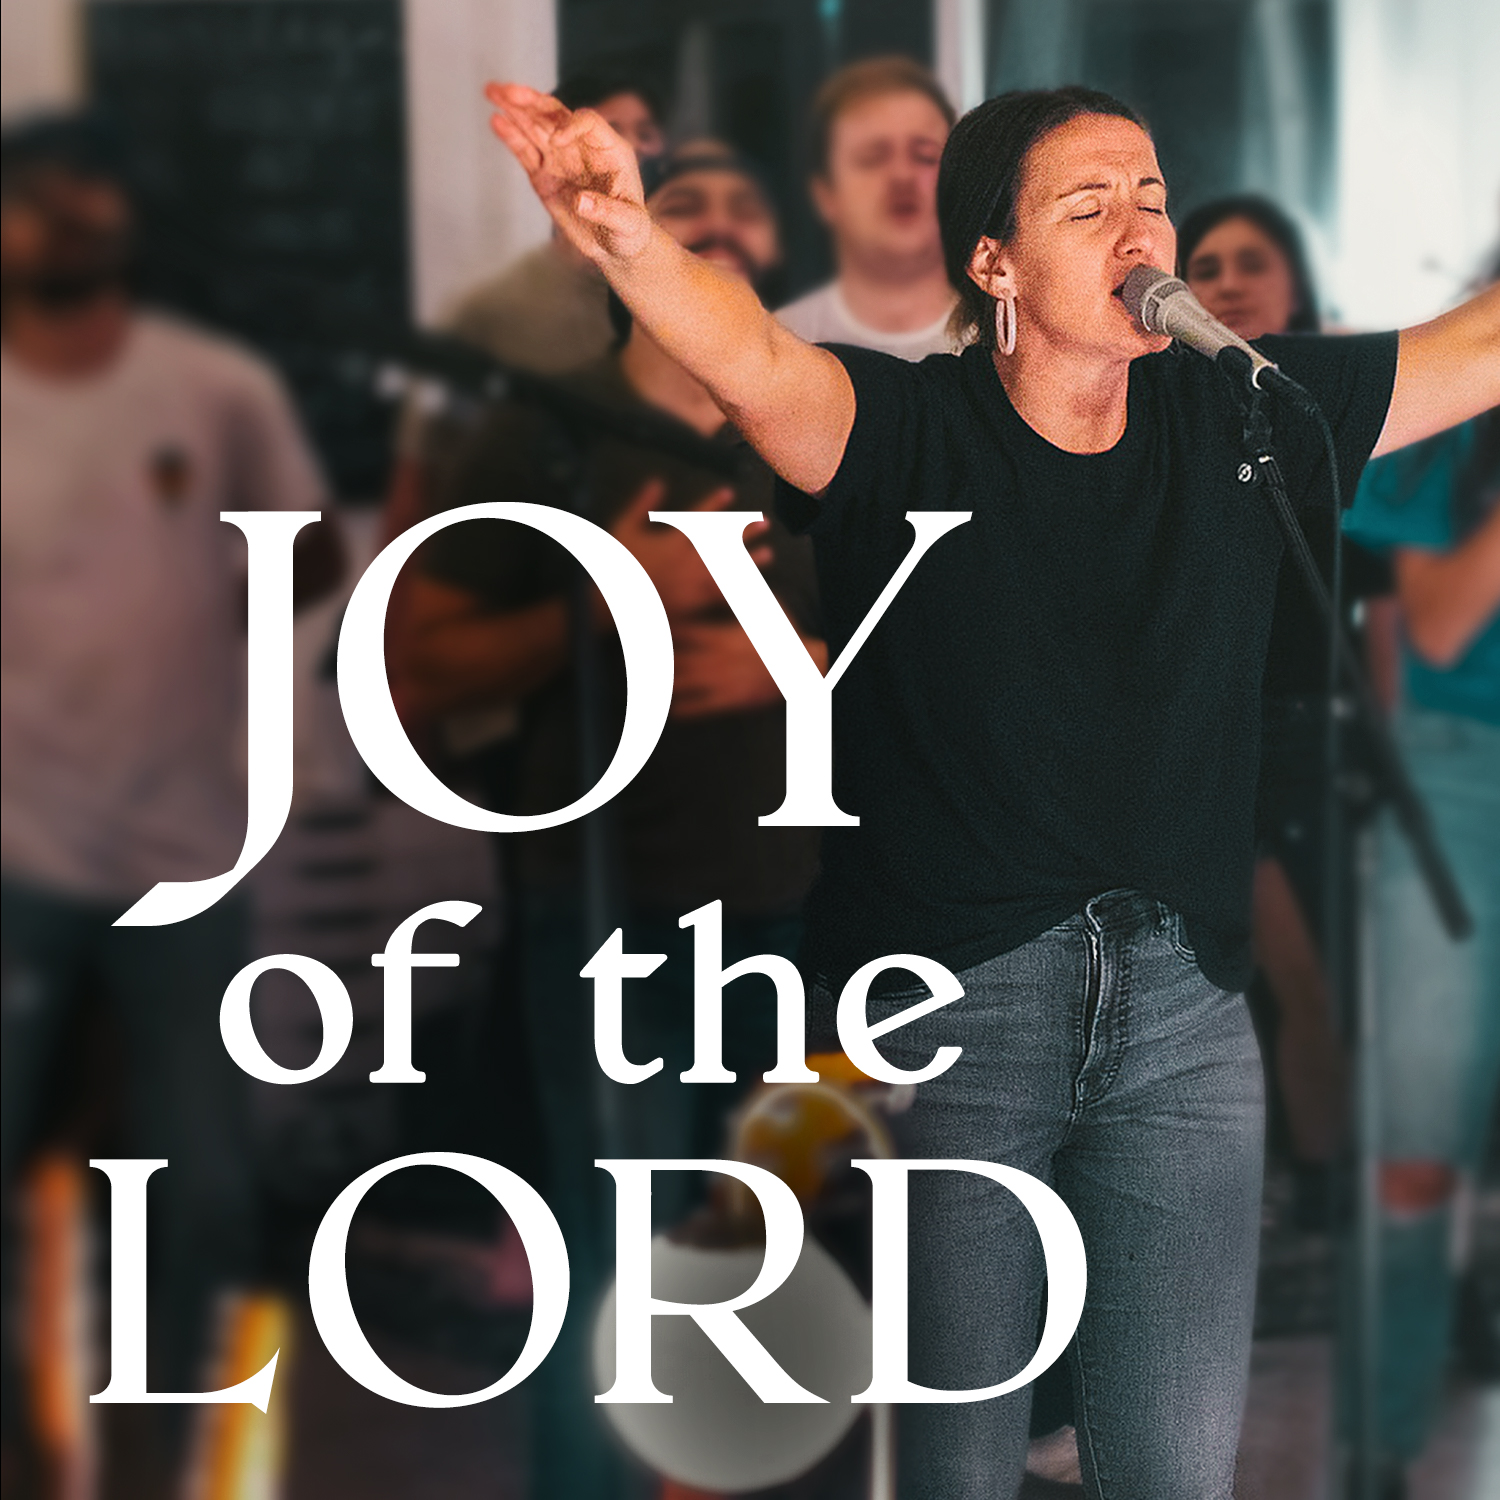 Joy of the Lord (Spontaneous Worship from The 18 Inch Journey)